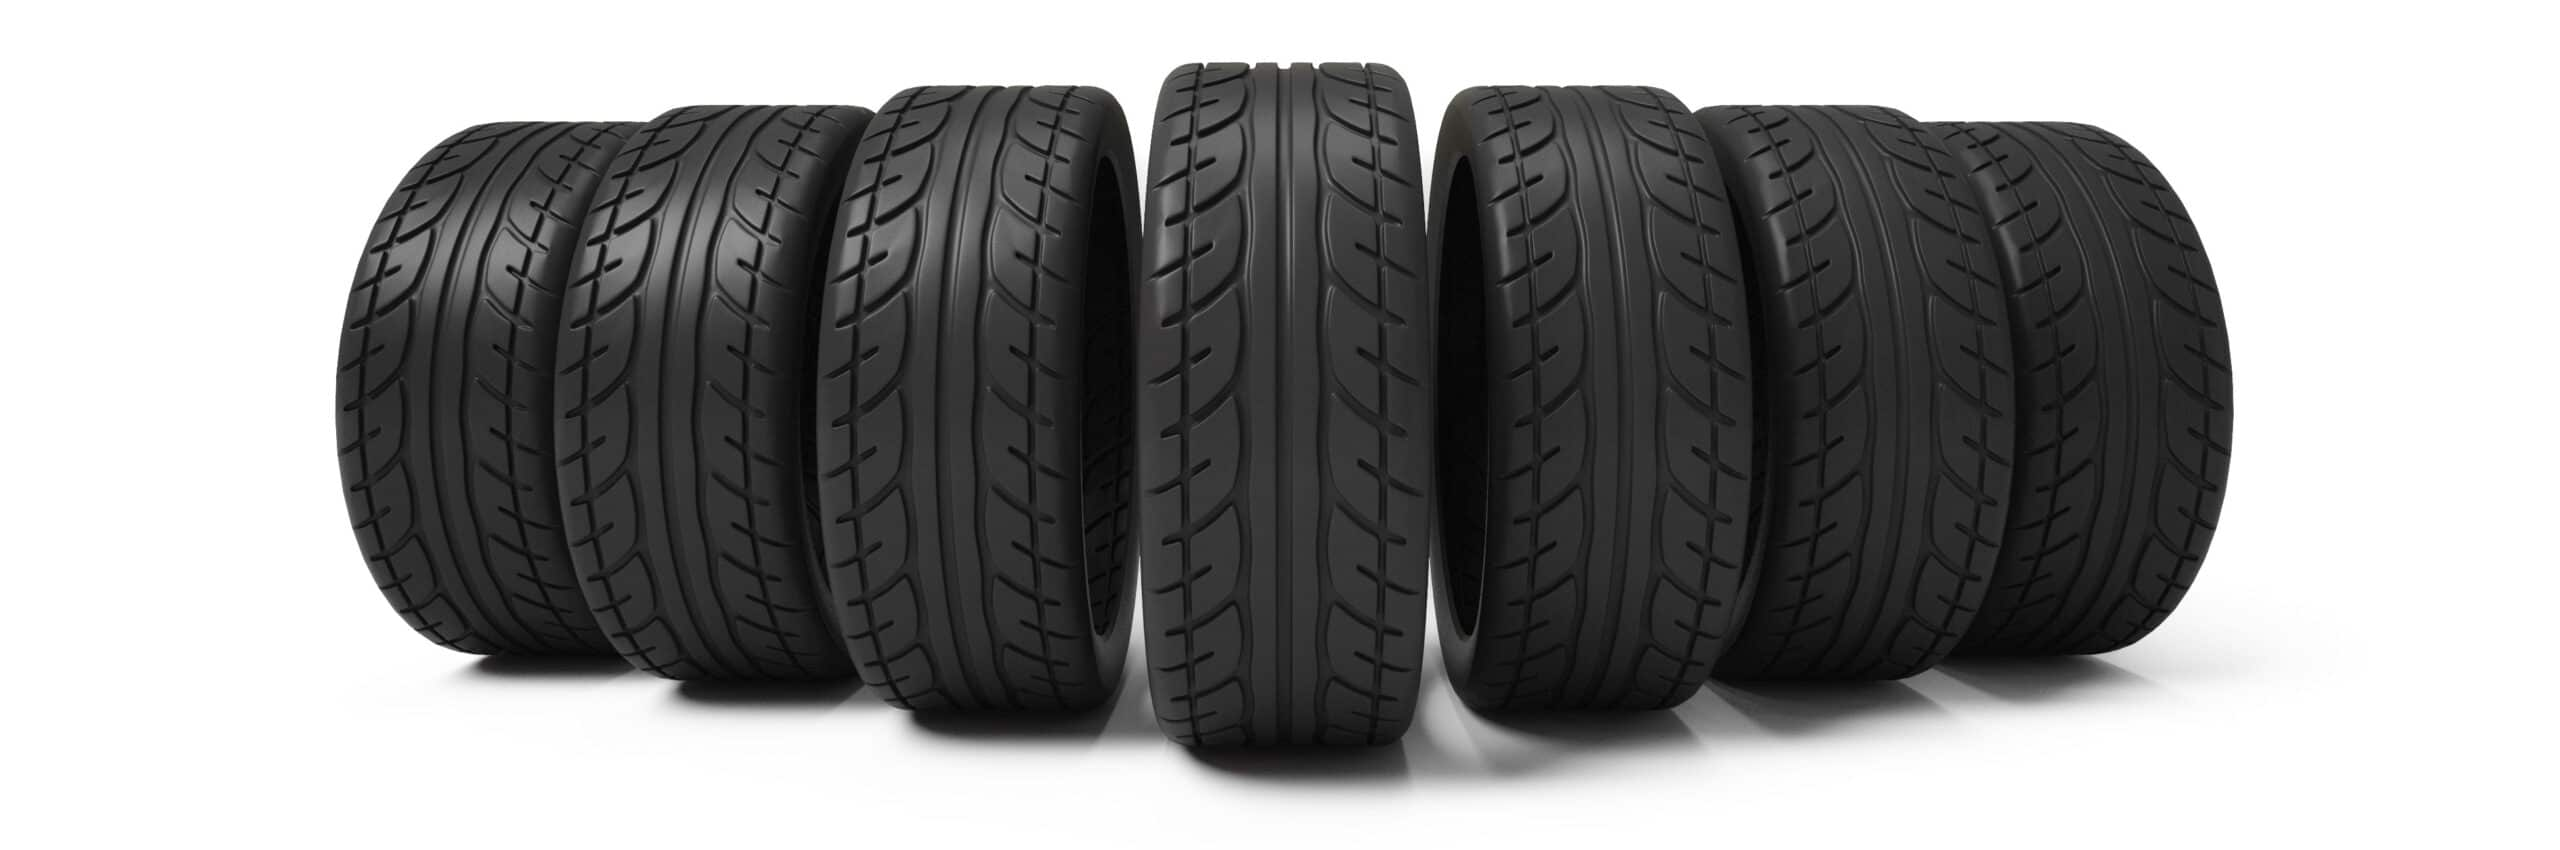 comment choisir les pneus pour les voitures sans permis. Black Bedroom Furniture Sets. Home Design Ideas